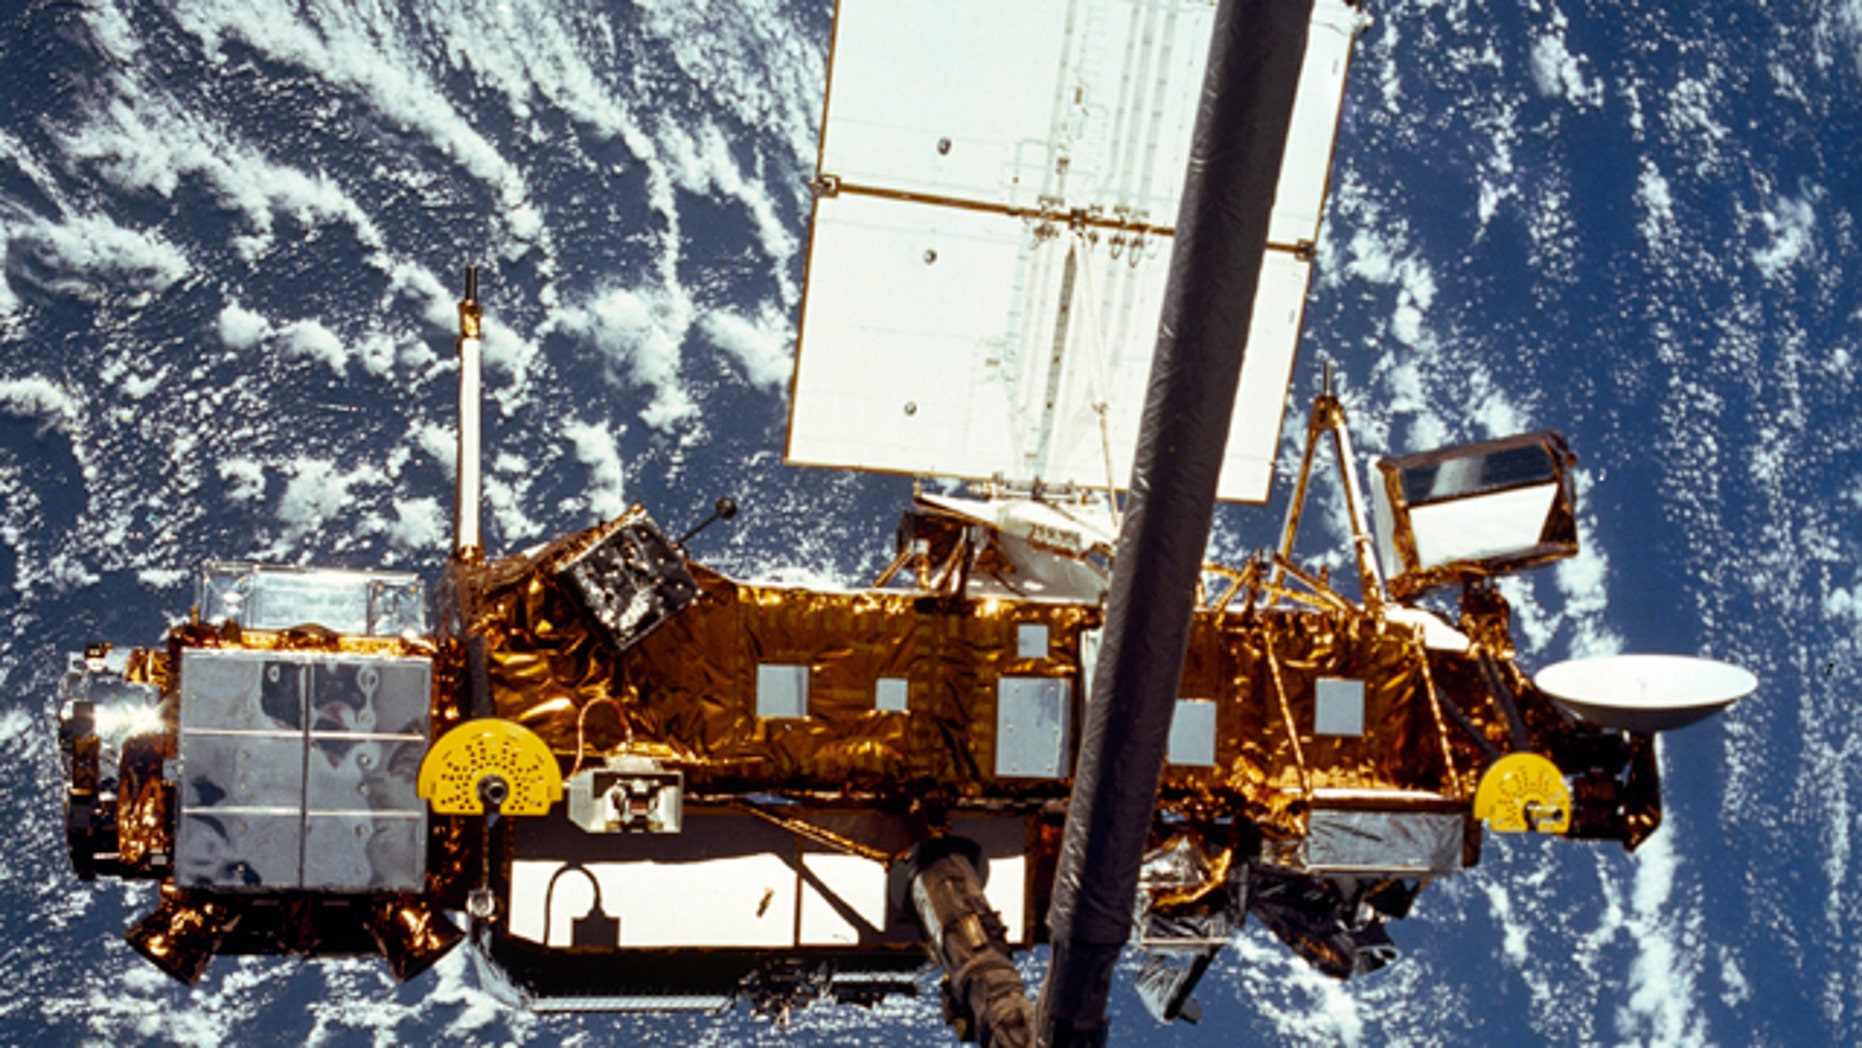 The Upper Atmosphere Research Satellite (UARS) is seen in the grasp of a robotic arm during deployment from the space shuttle in September, 1991. NASA's old research satellite came crashing down through the atmosphere Saturday, Sept. 24, 2011 -- though where exactly may never be known.